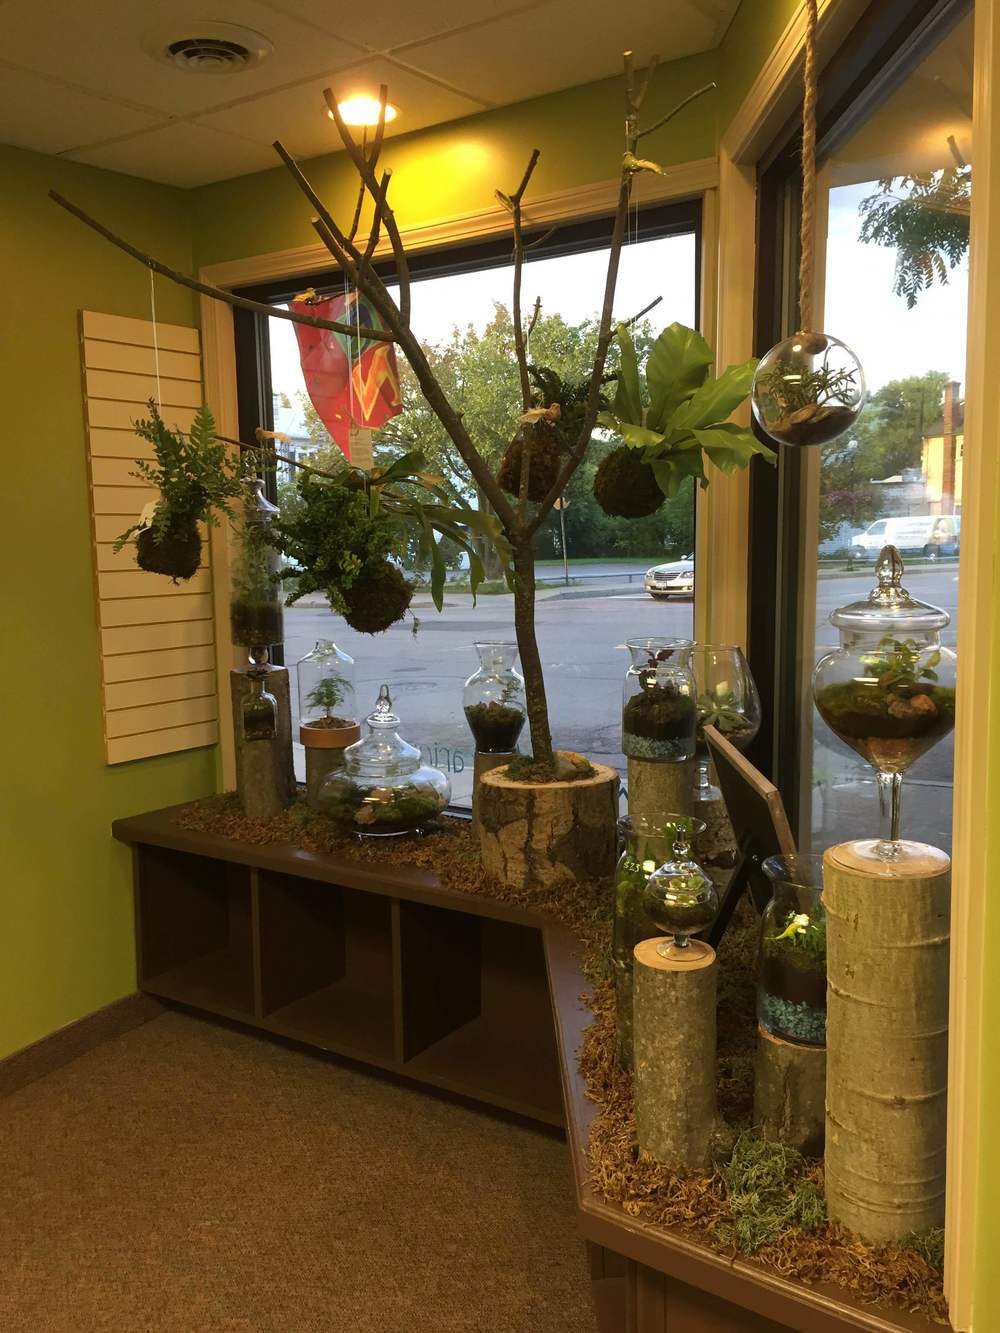 Jardin's unique display featuring open and closed terrariums and a hanging string garden.